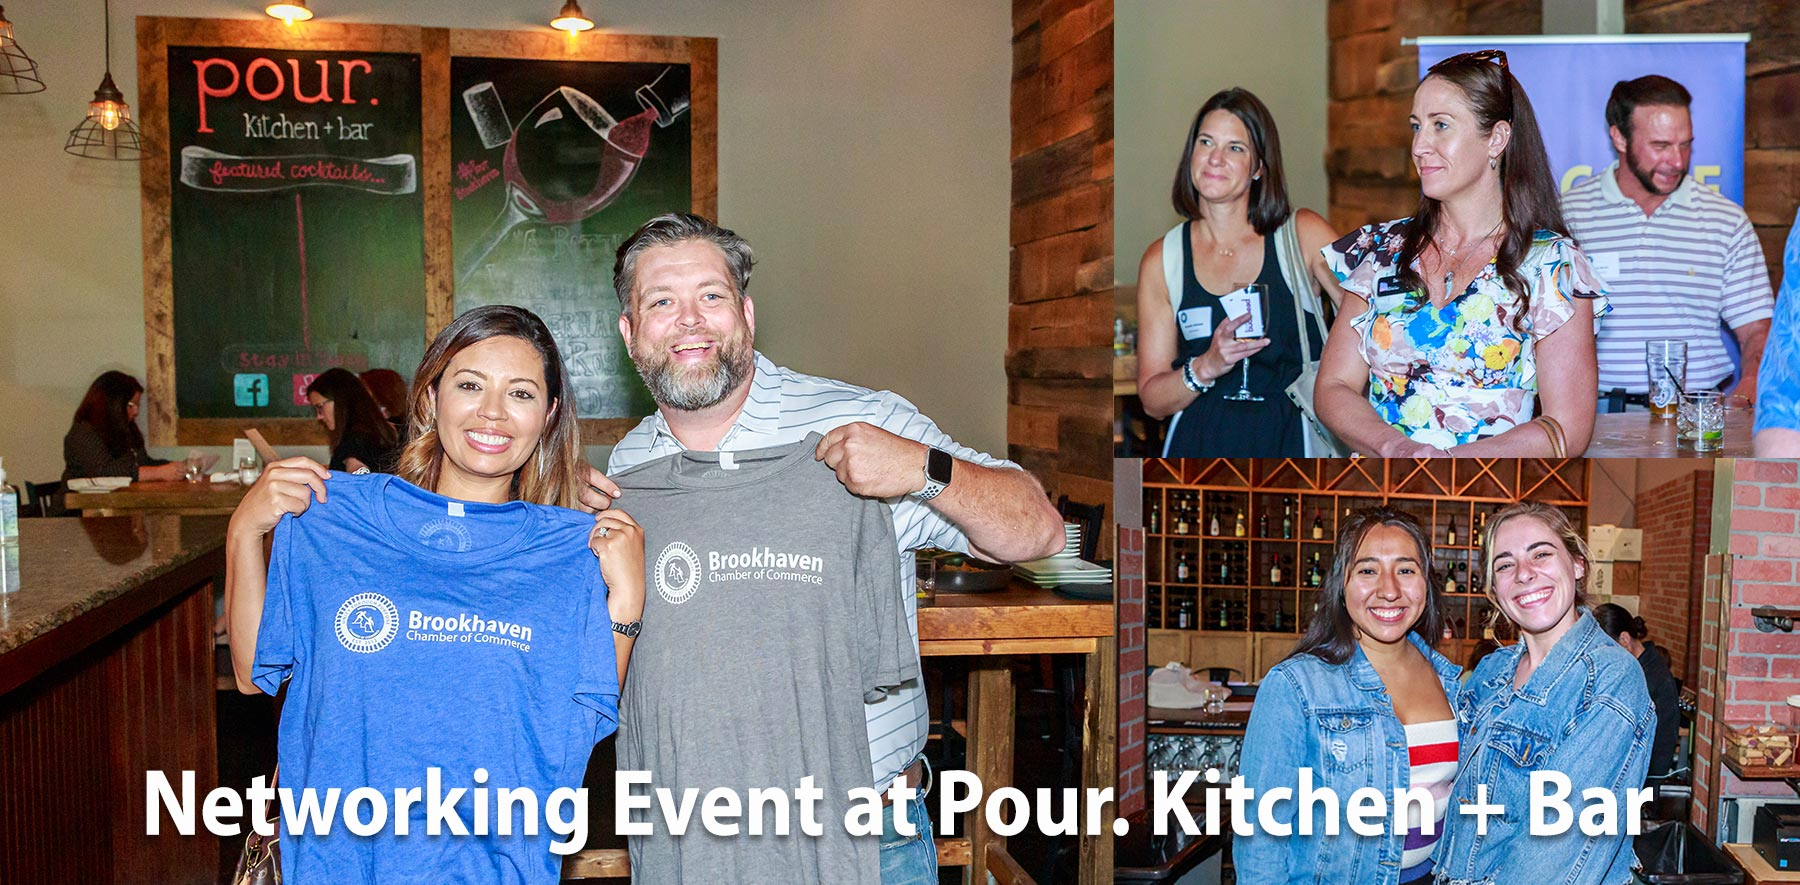 Networking event on Thursday, June 17, 2021 at Pour Kitchen + Bar